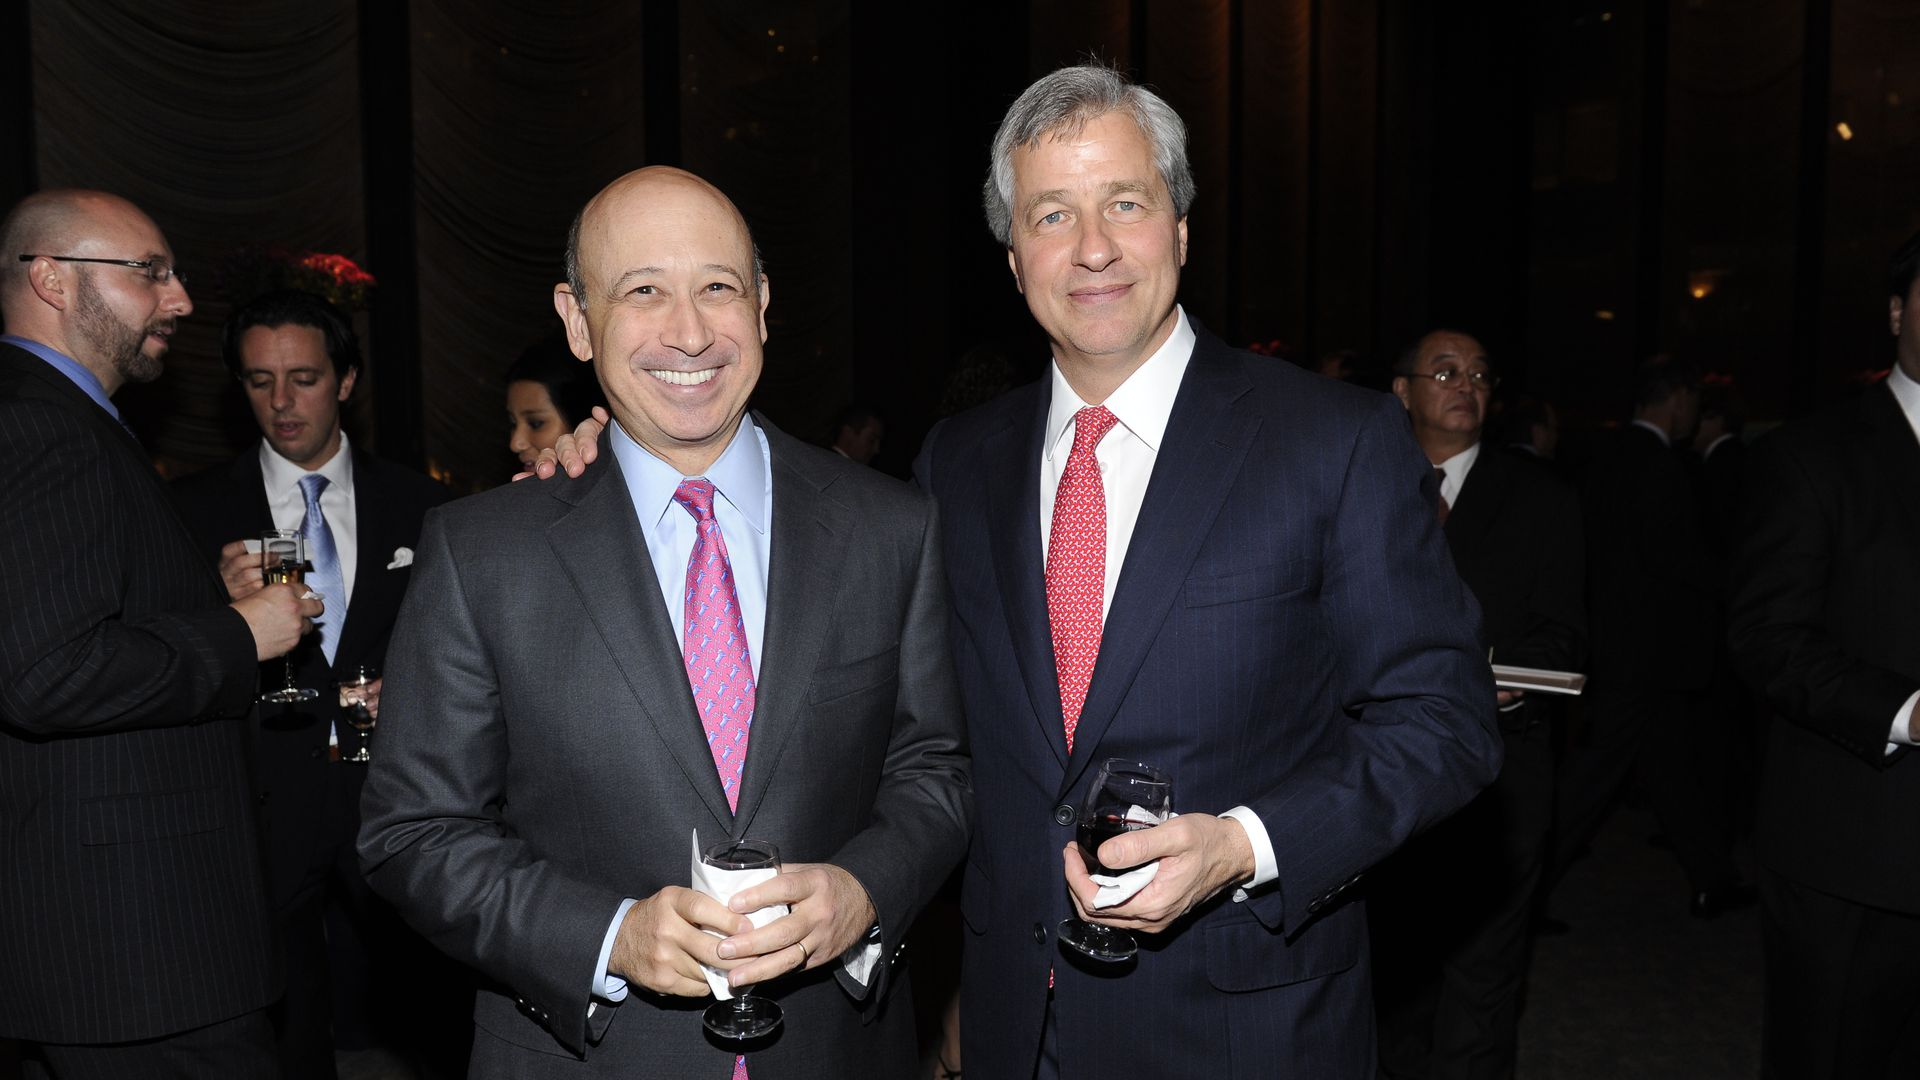 Dimon and Blankfein